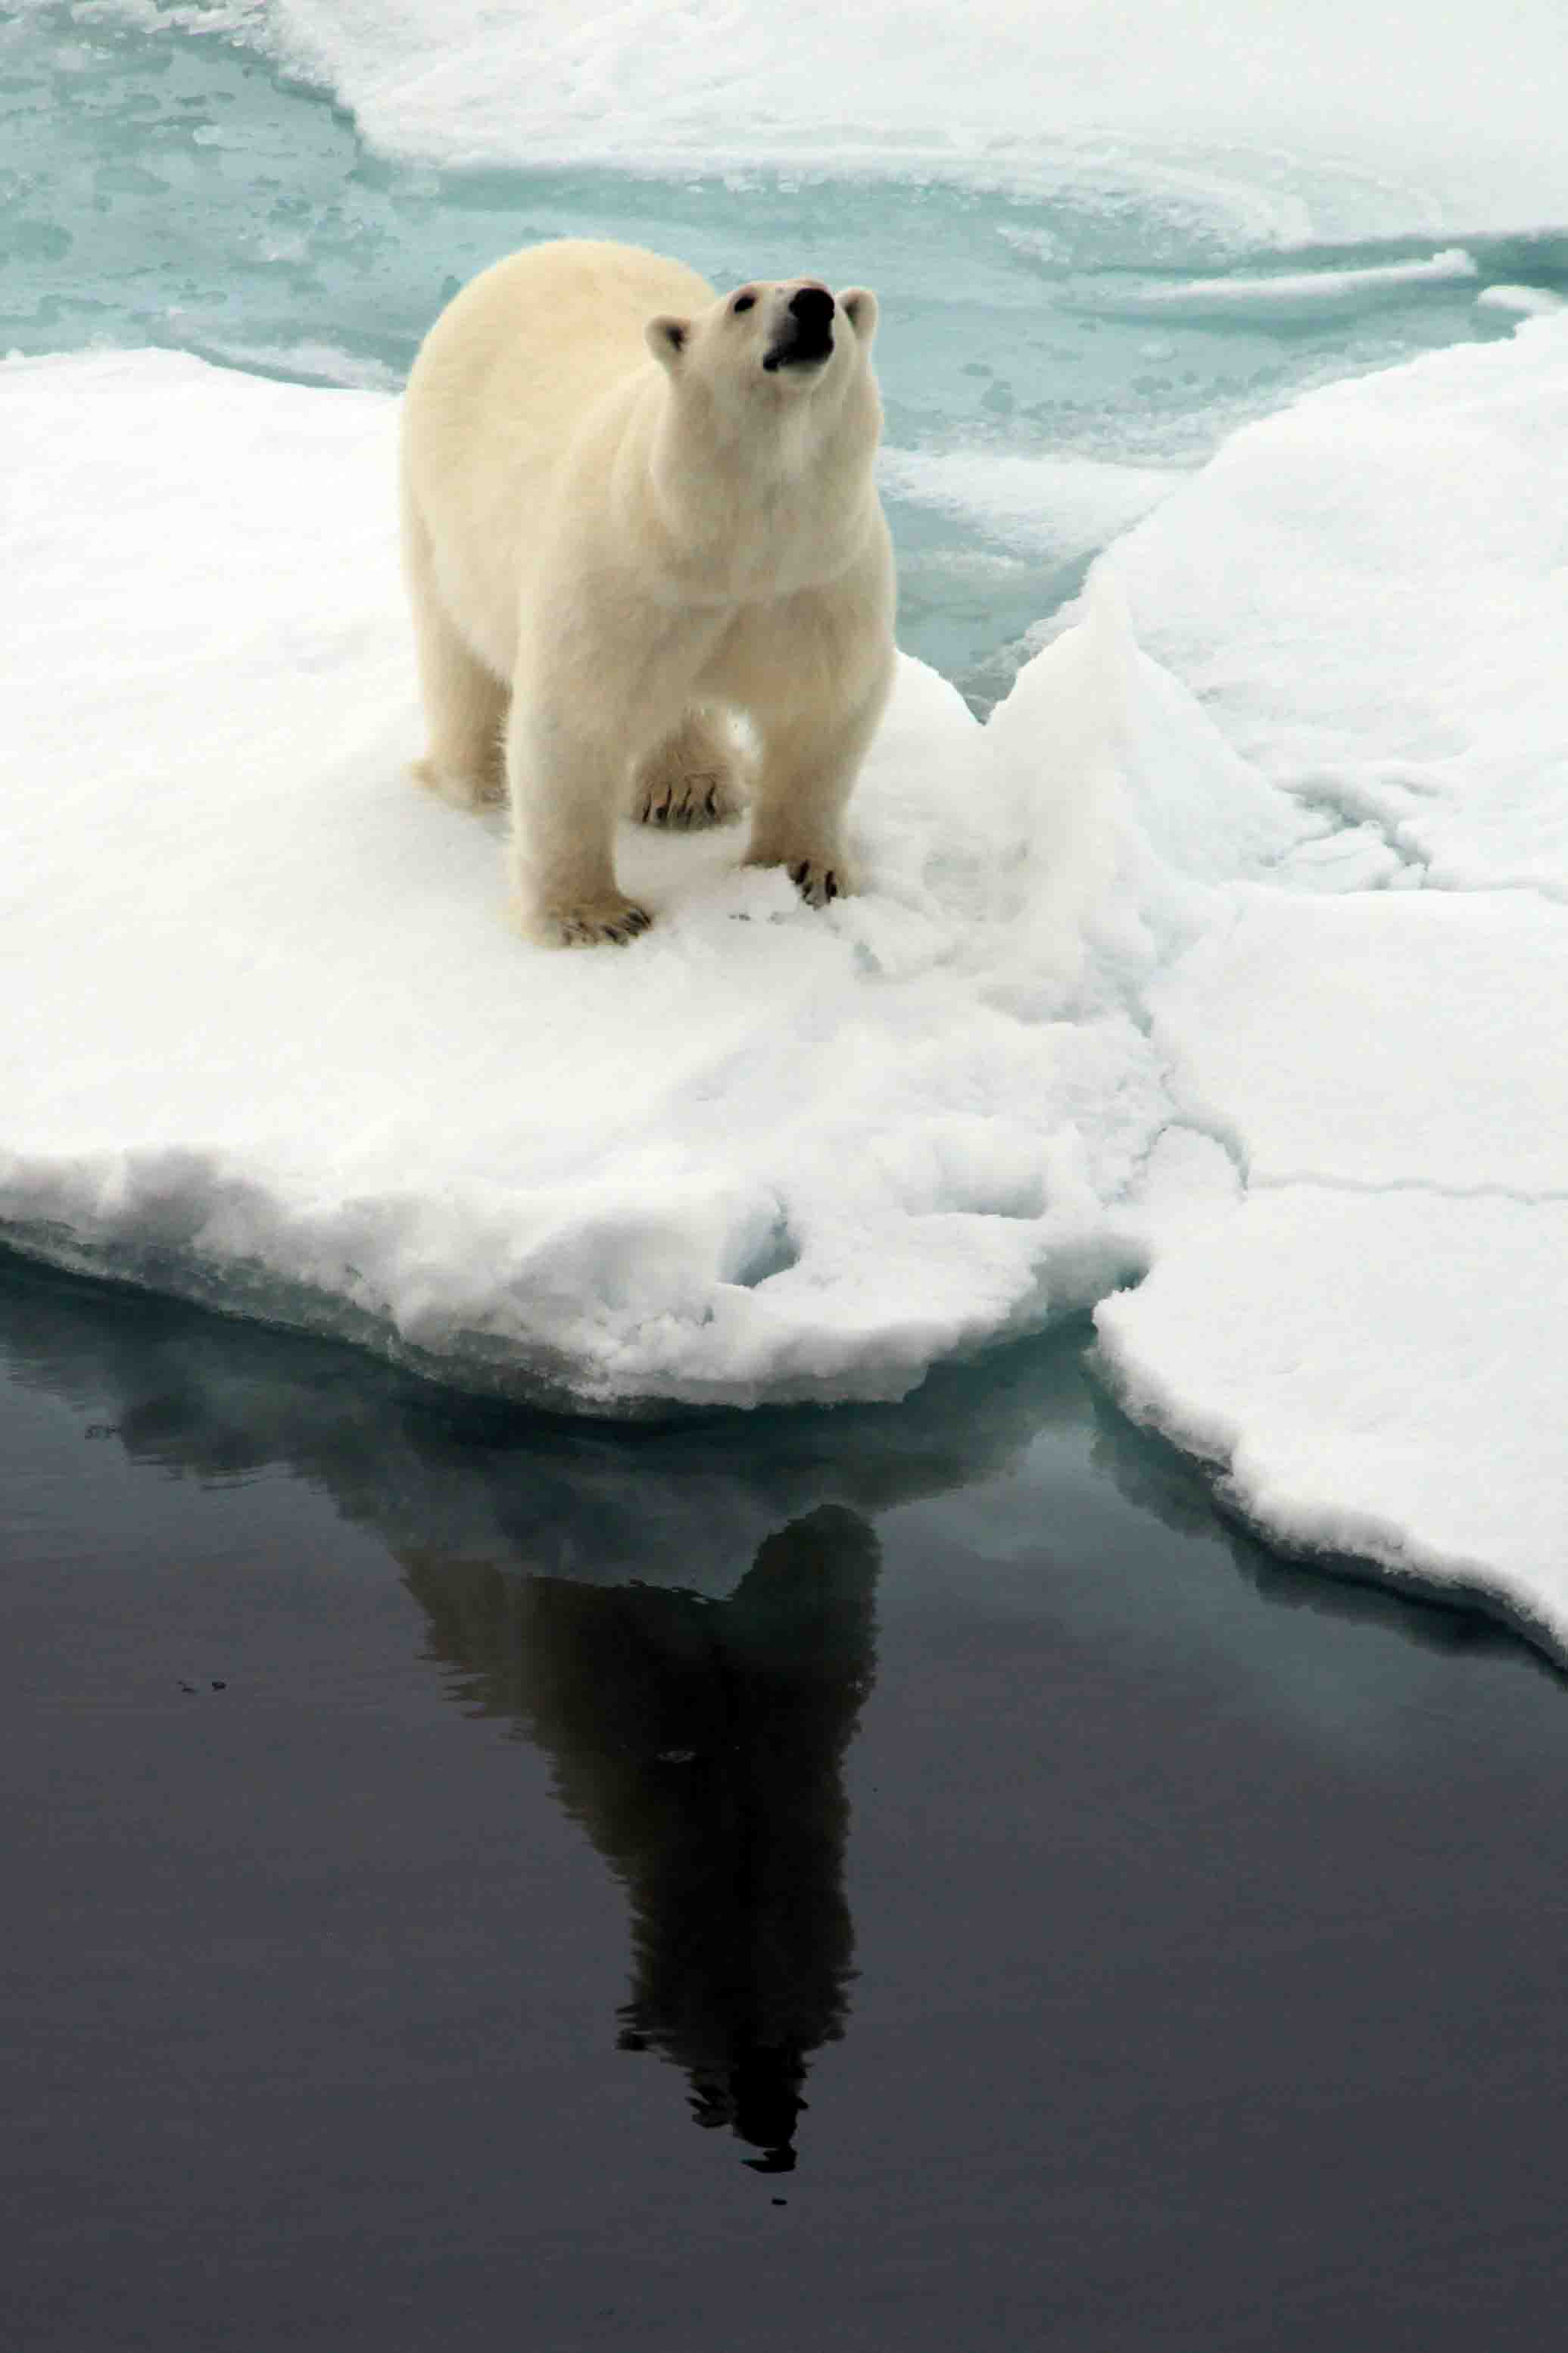 polar bear sniffing with its reflection in the water